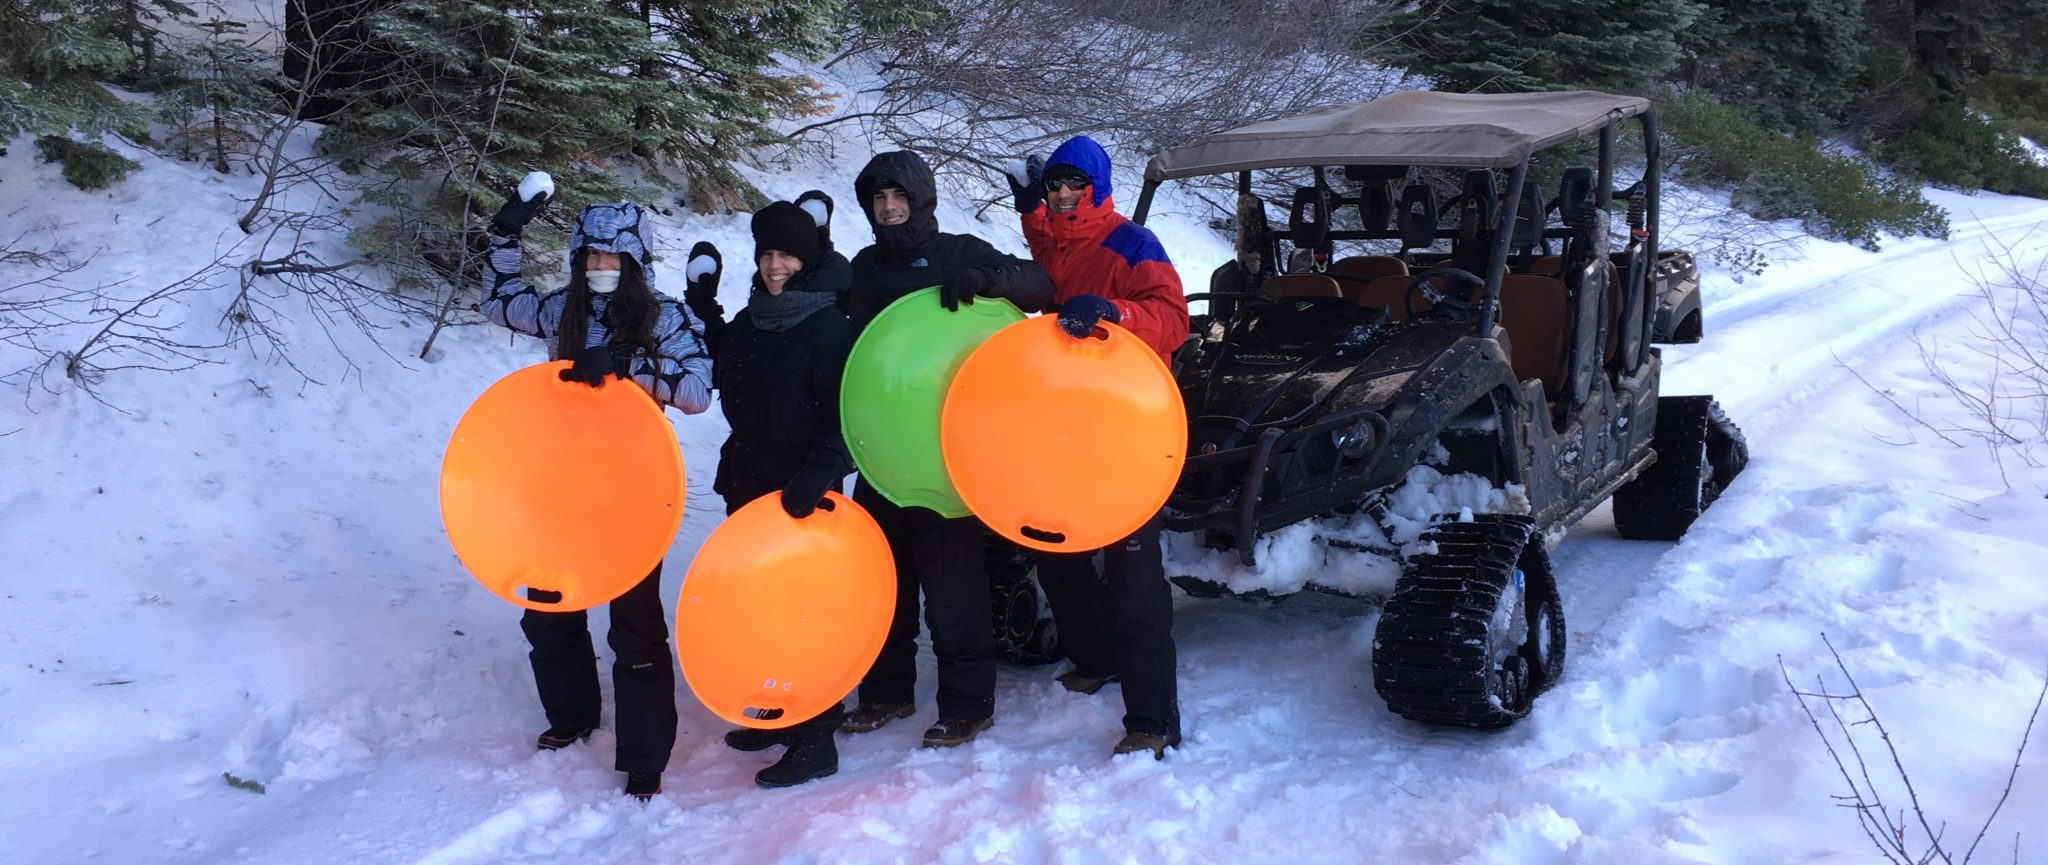 Don't let the cold stop you! Fun things to do in Yosemite during winter